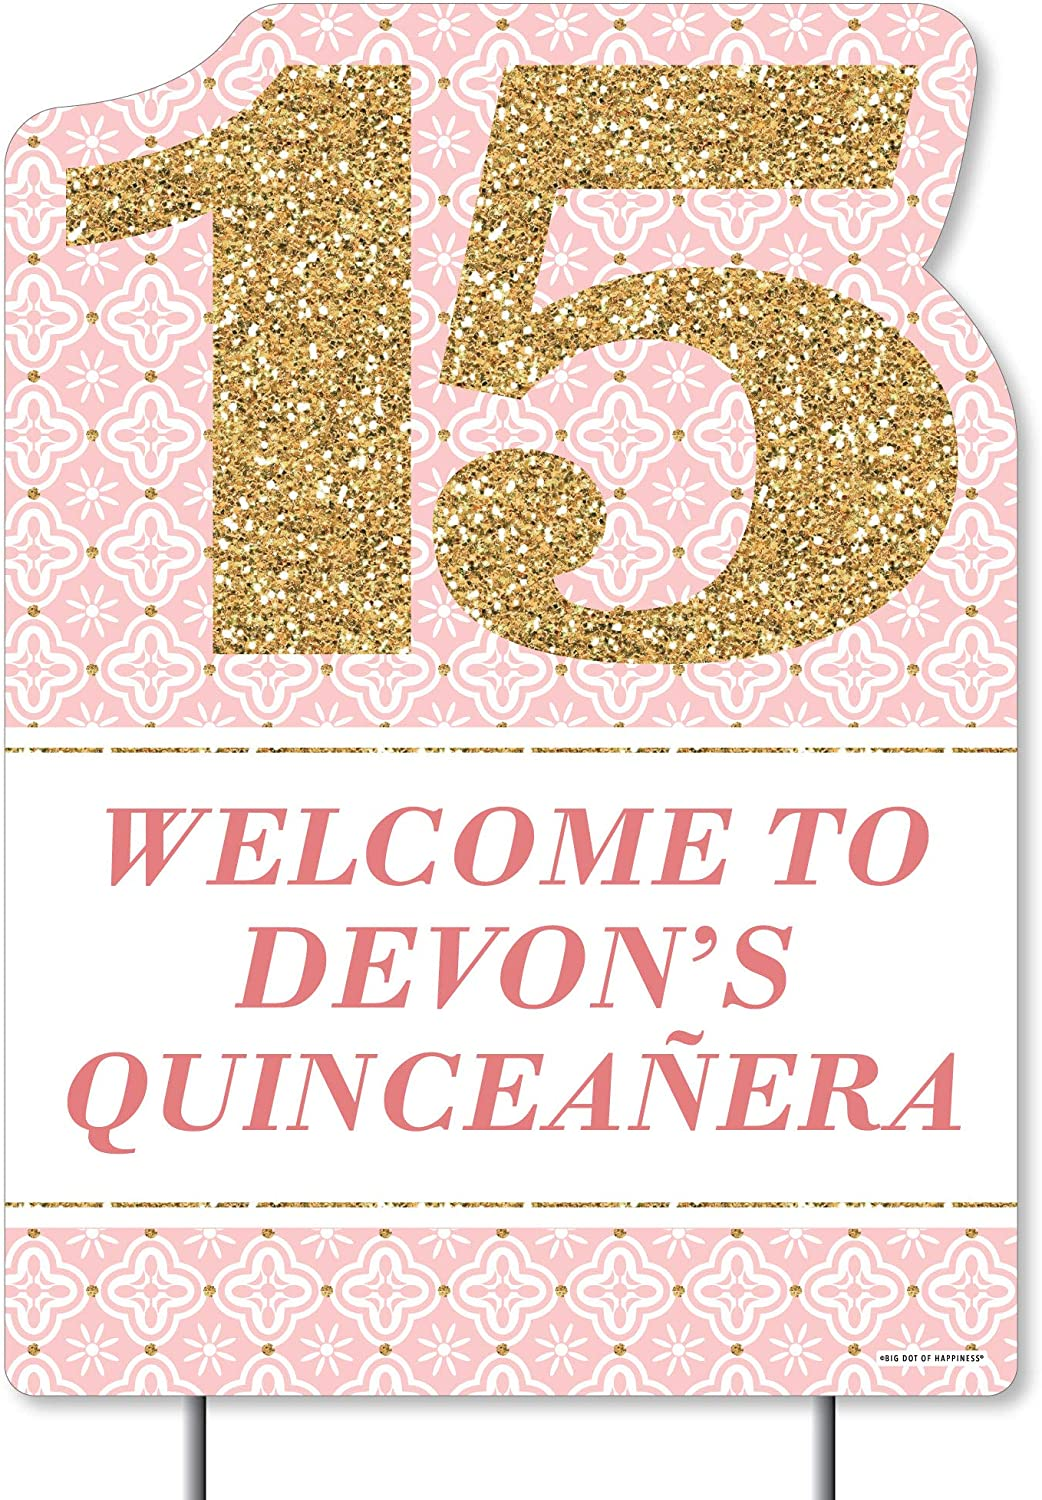 Big Dot of Happiness Personalized Mis Party Max 79% OFF Decora Quince Anos Super Special SALE held -